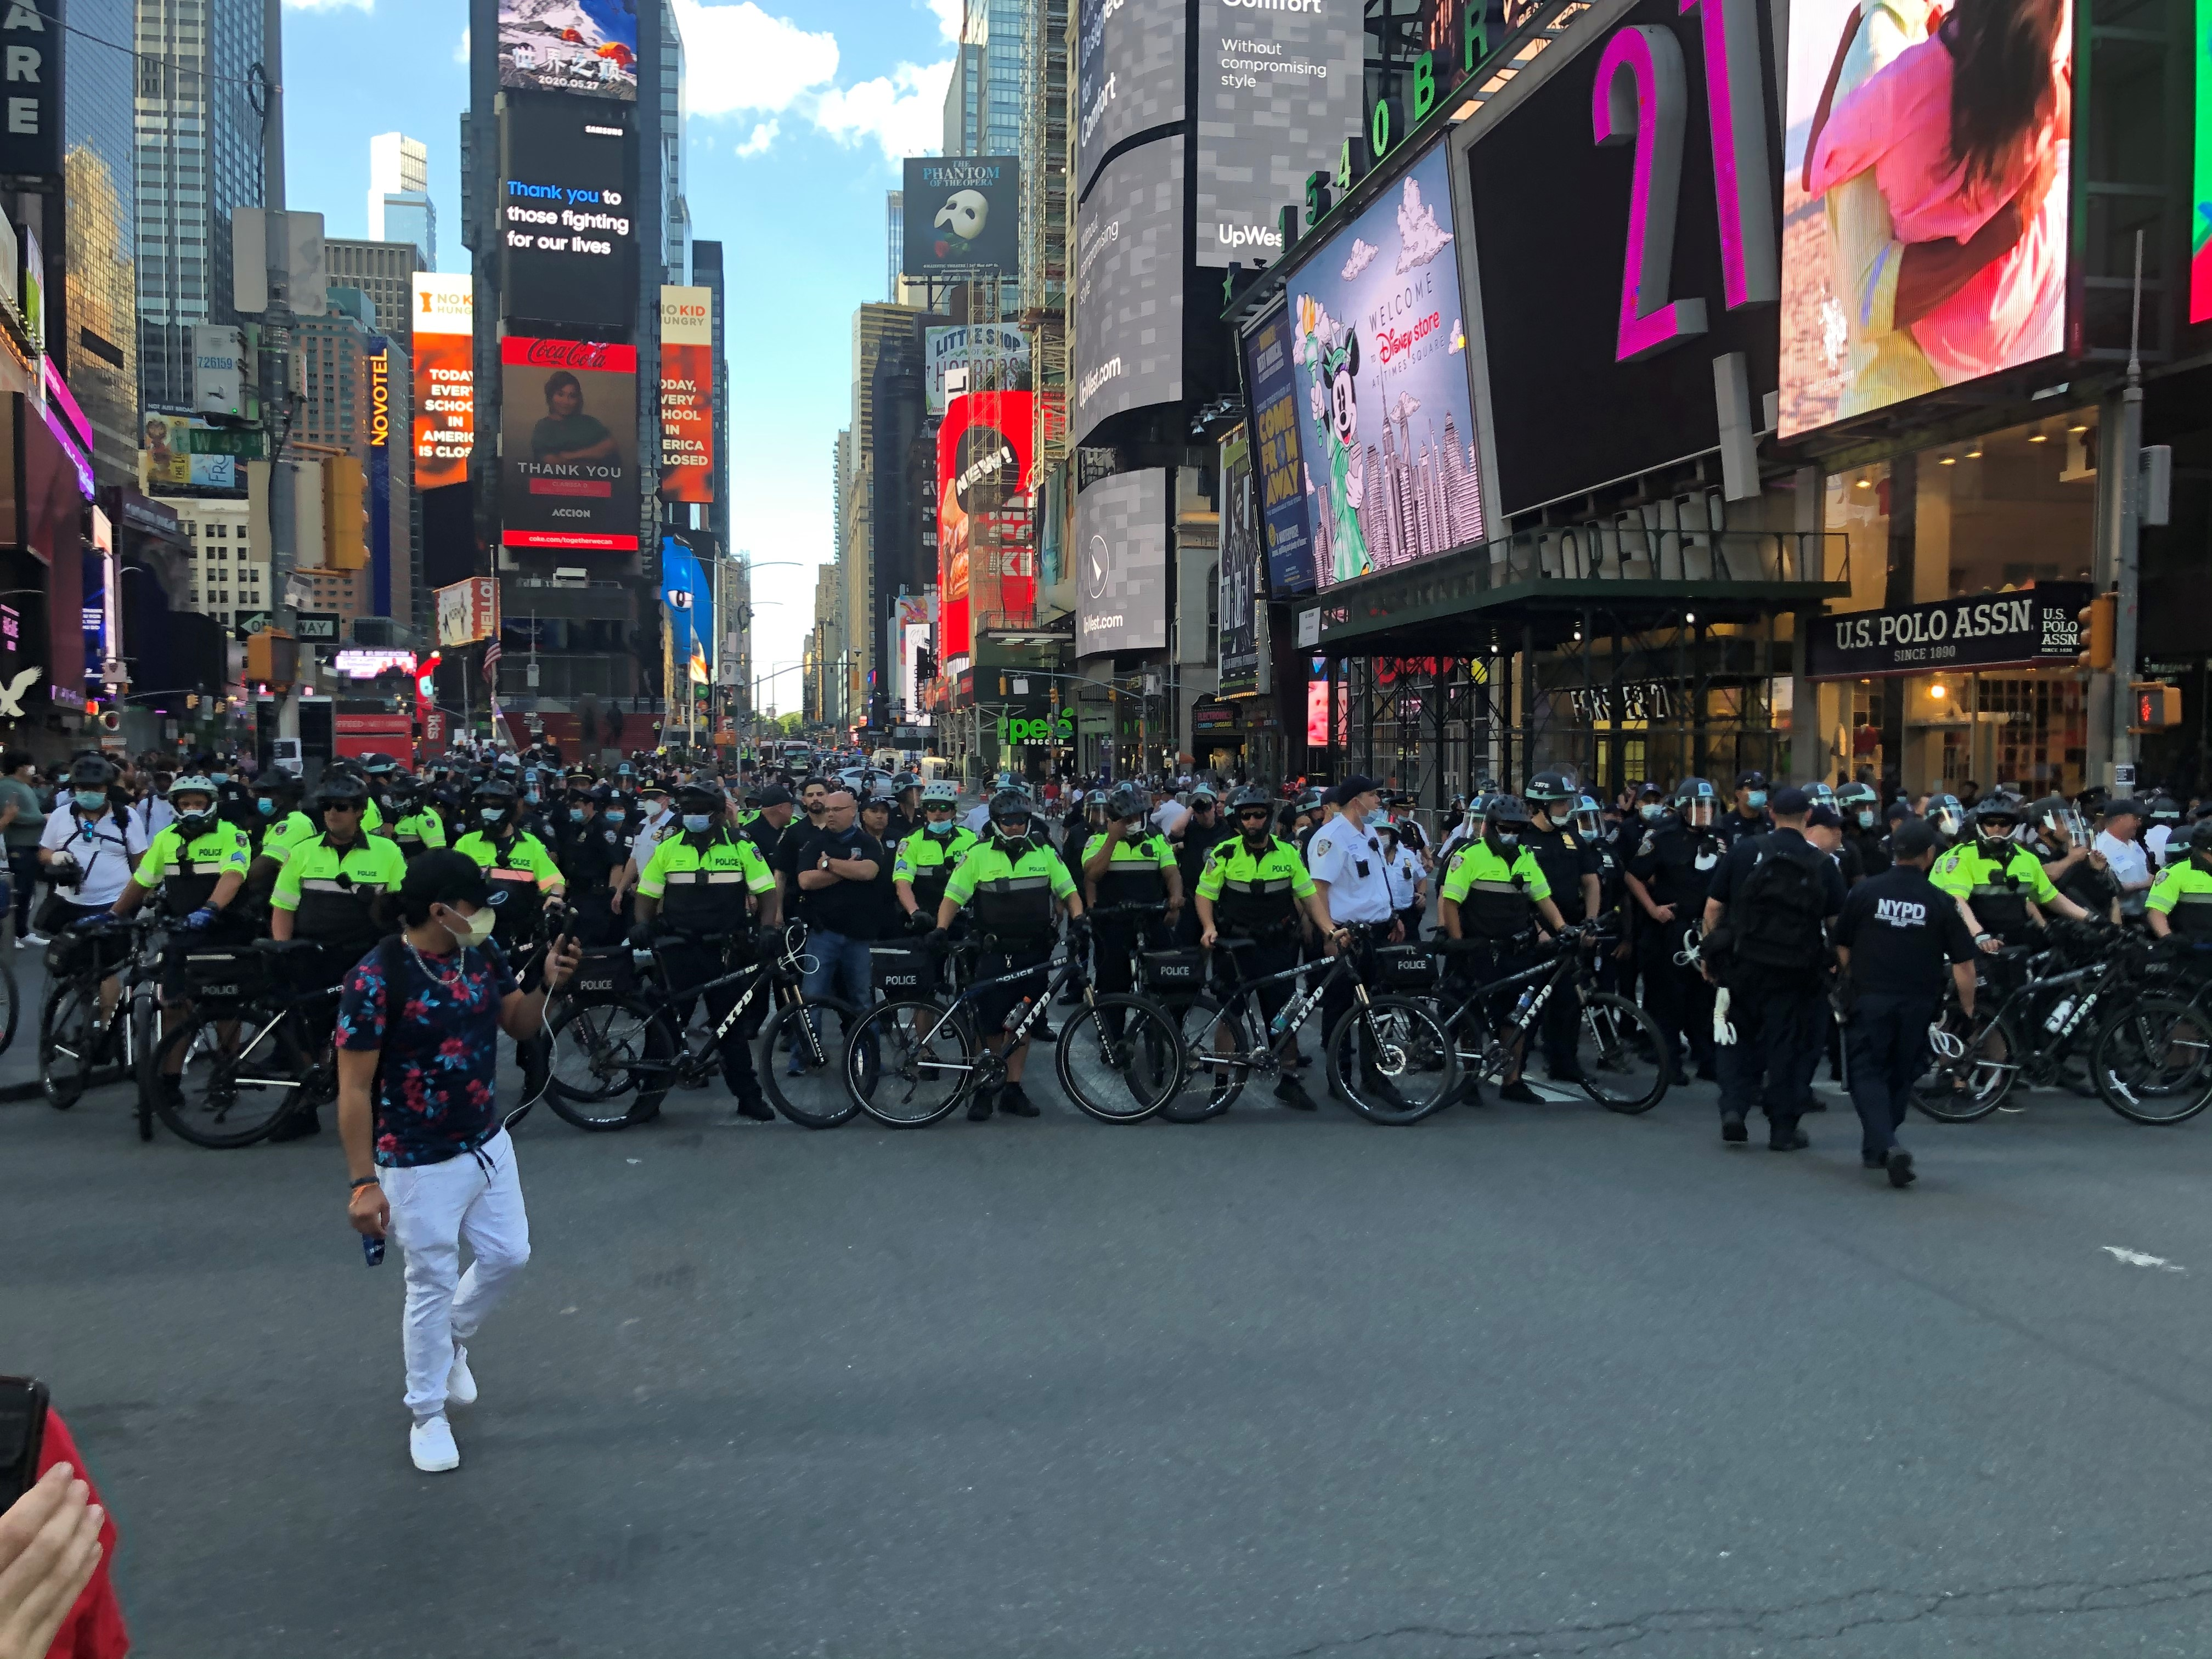 New York police officers form a line in Times Square on May 30, 2020.